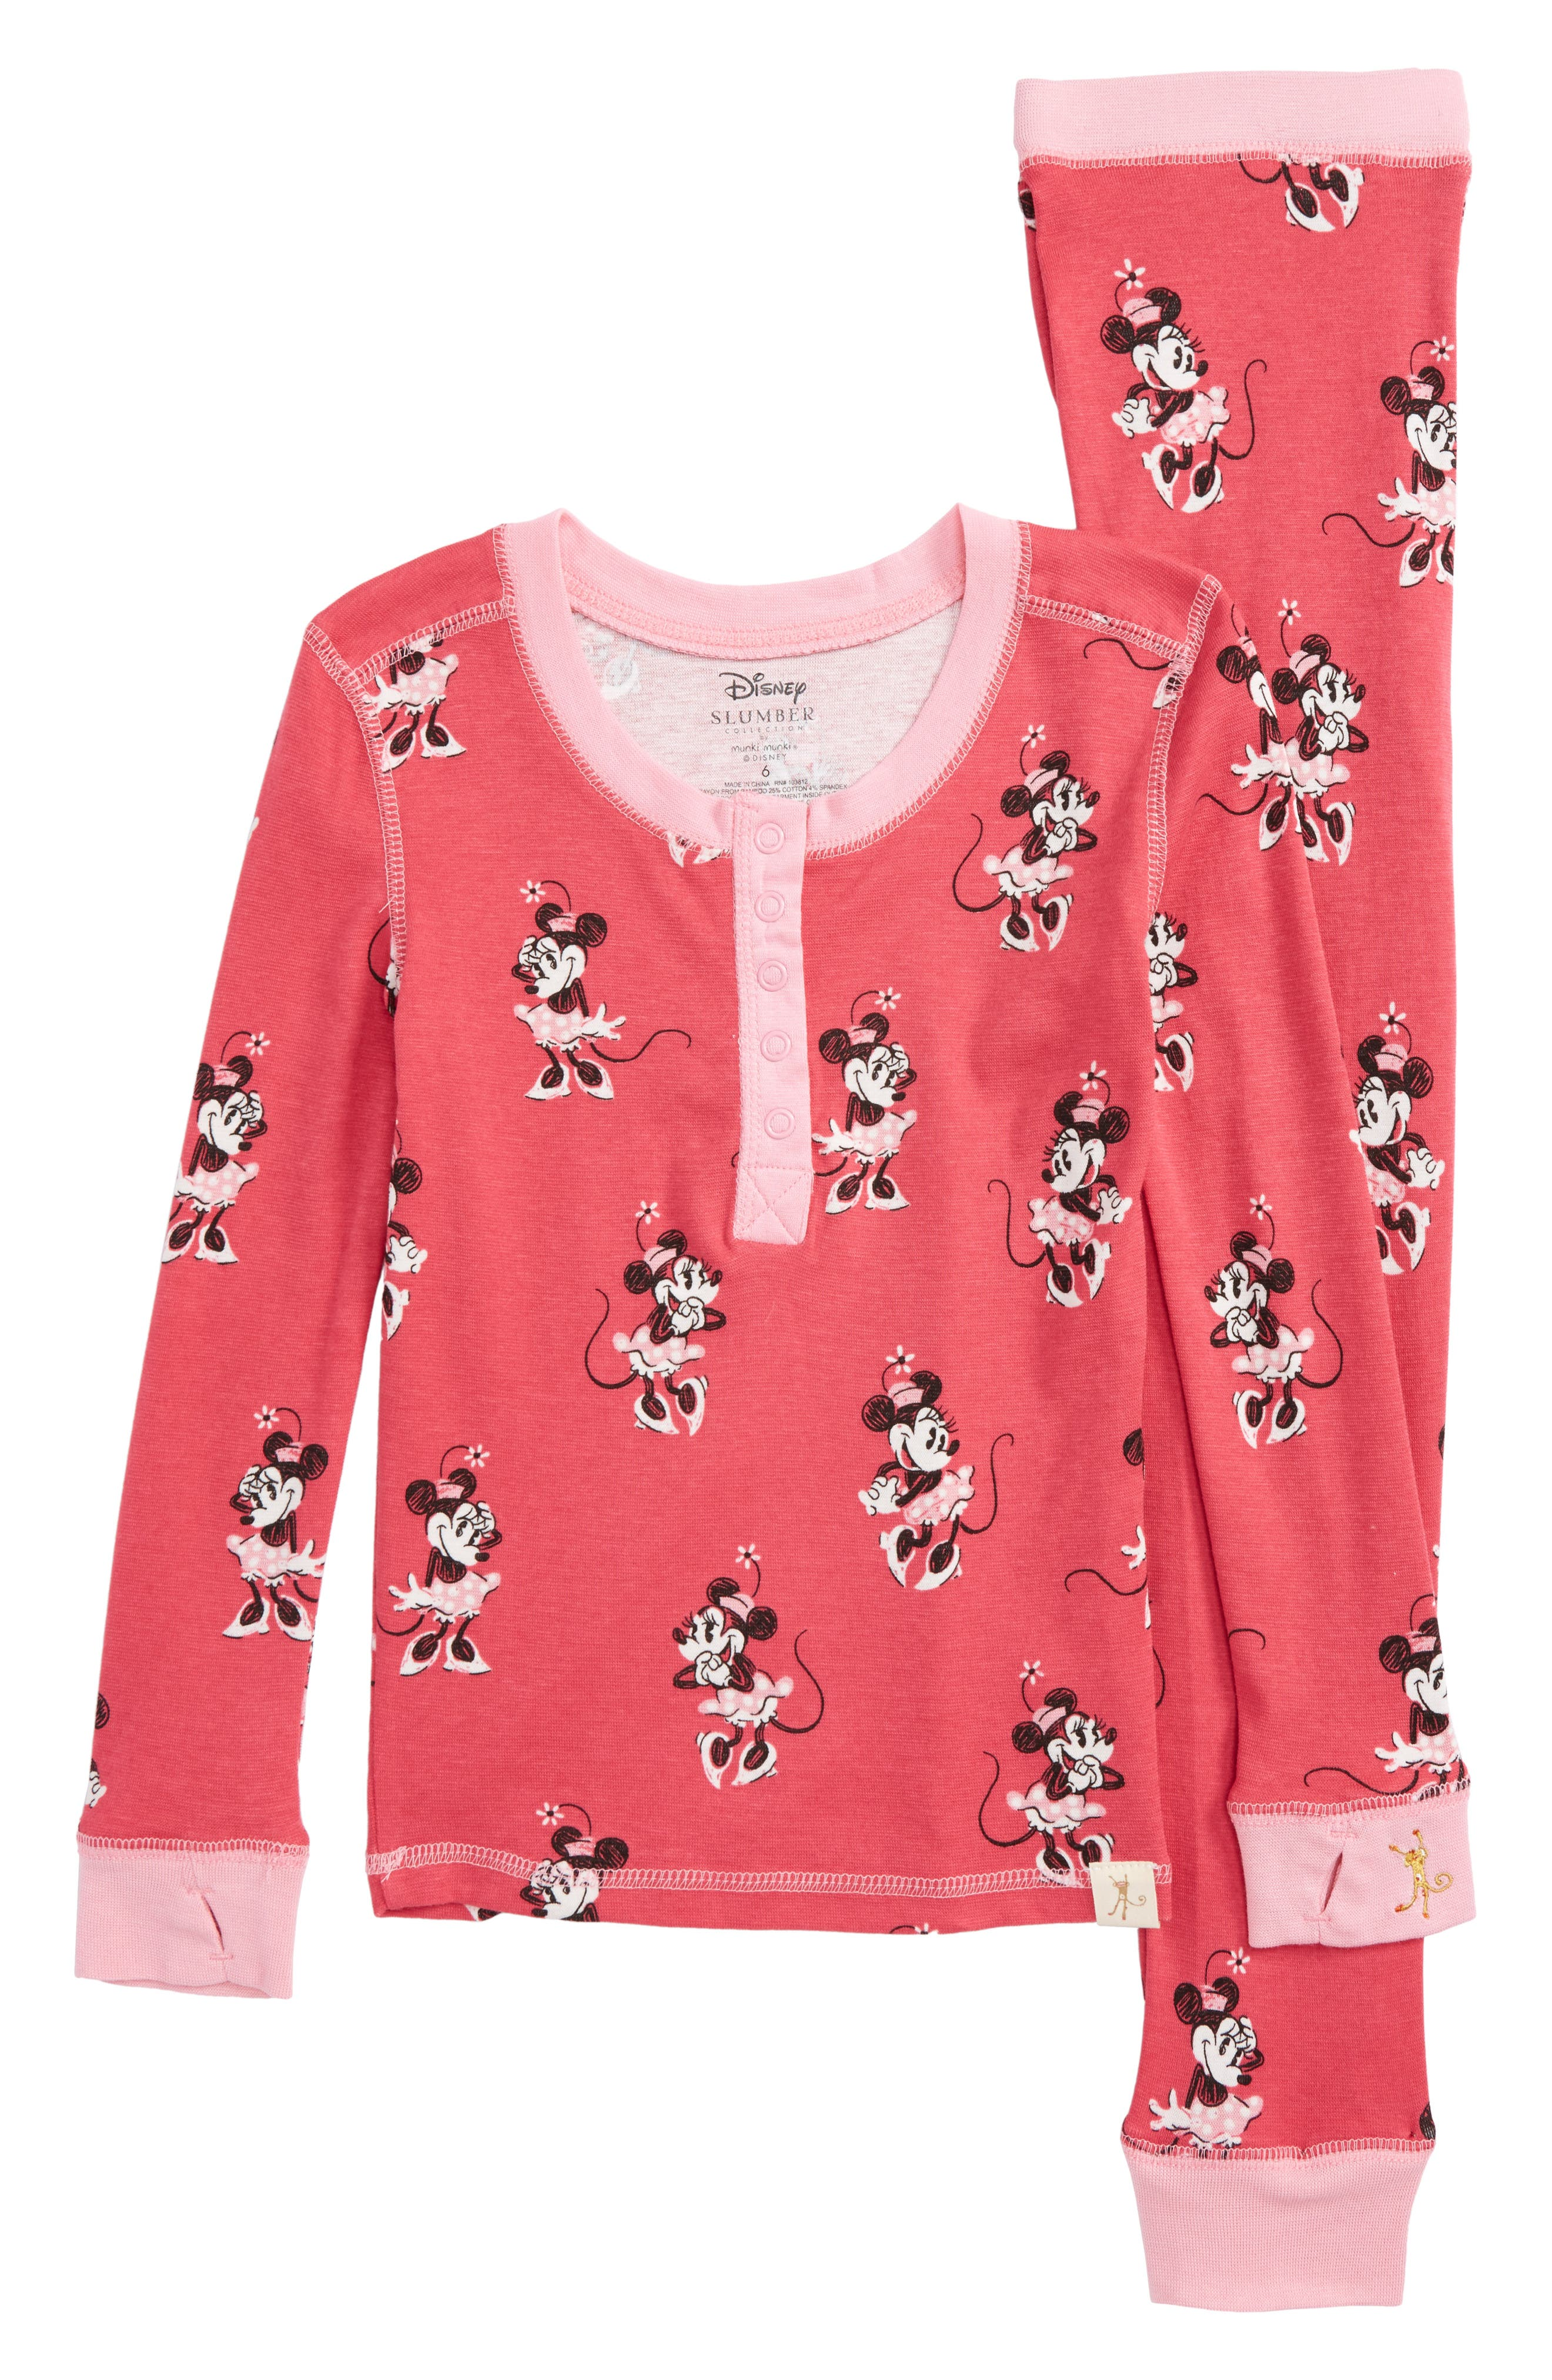 Disney – Minnie Mouse Fitted Two-Piece Pajamas,                         Main,                         color, 663